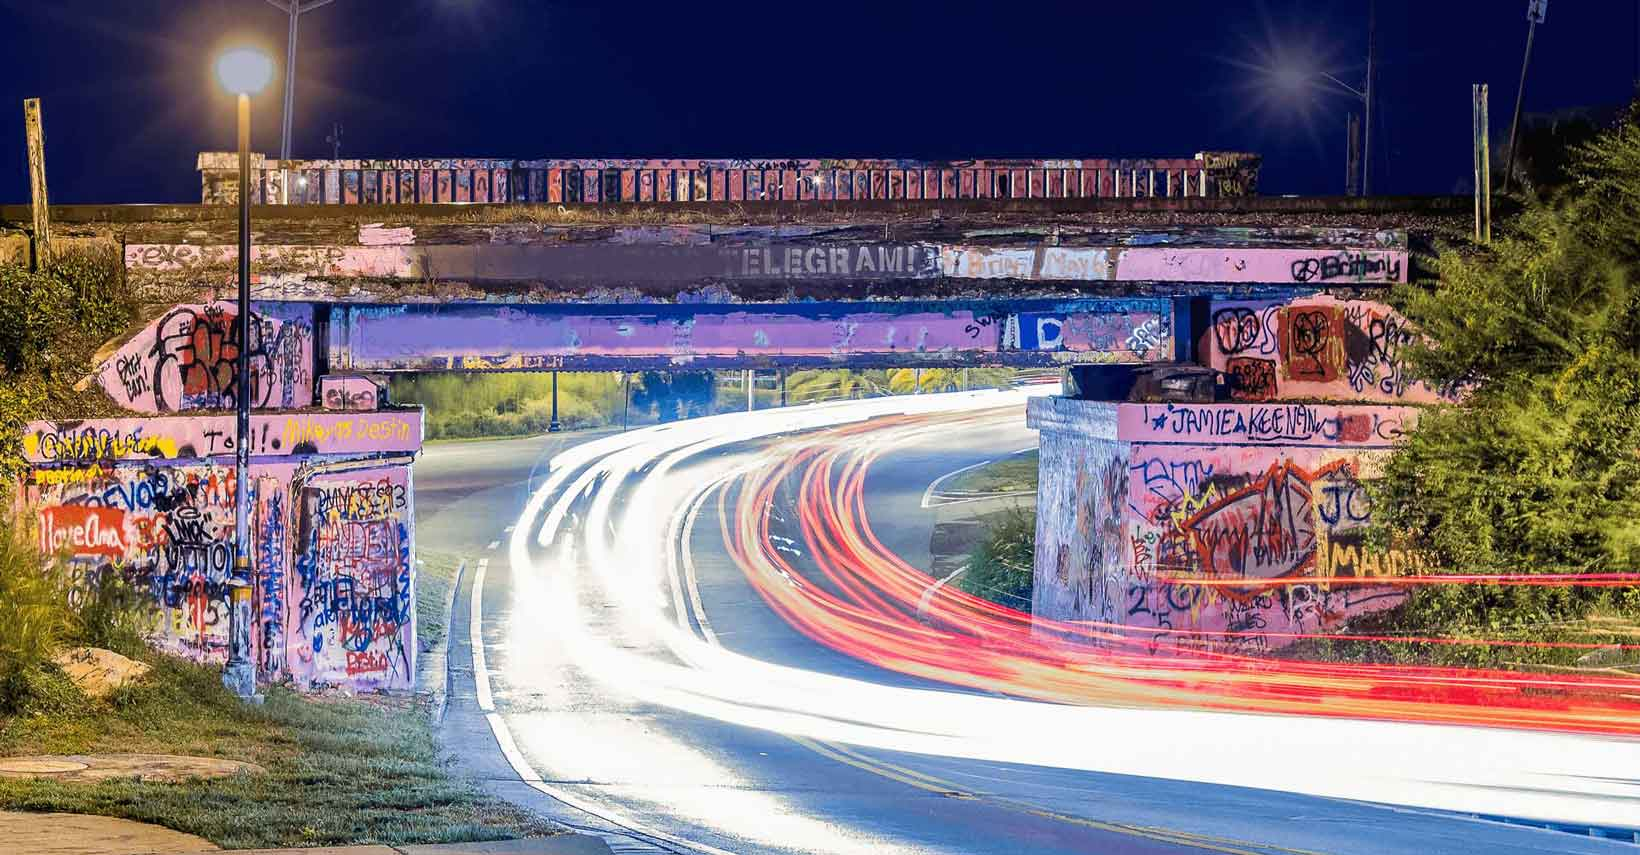 Traffic flowing through the famous Graffiti Bridge in Pensacola, Florida